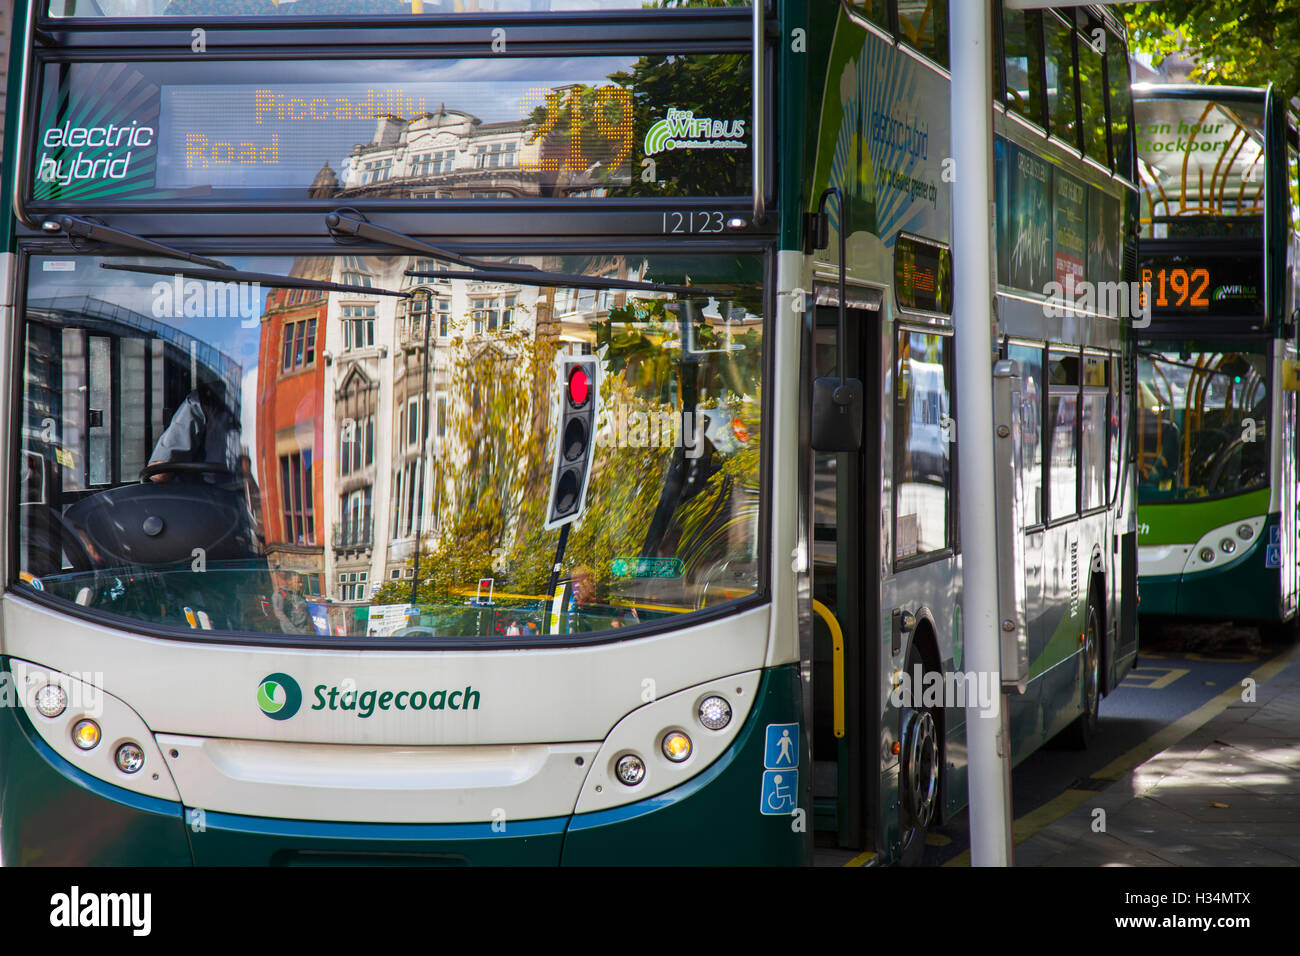 Electric Hybrid Stagecoach bus in Piccadilly, Manchester, UK Stock Photo